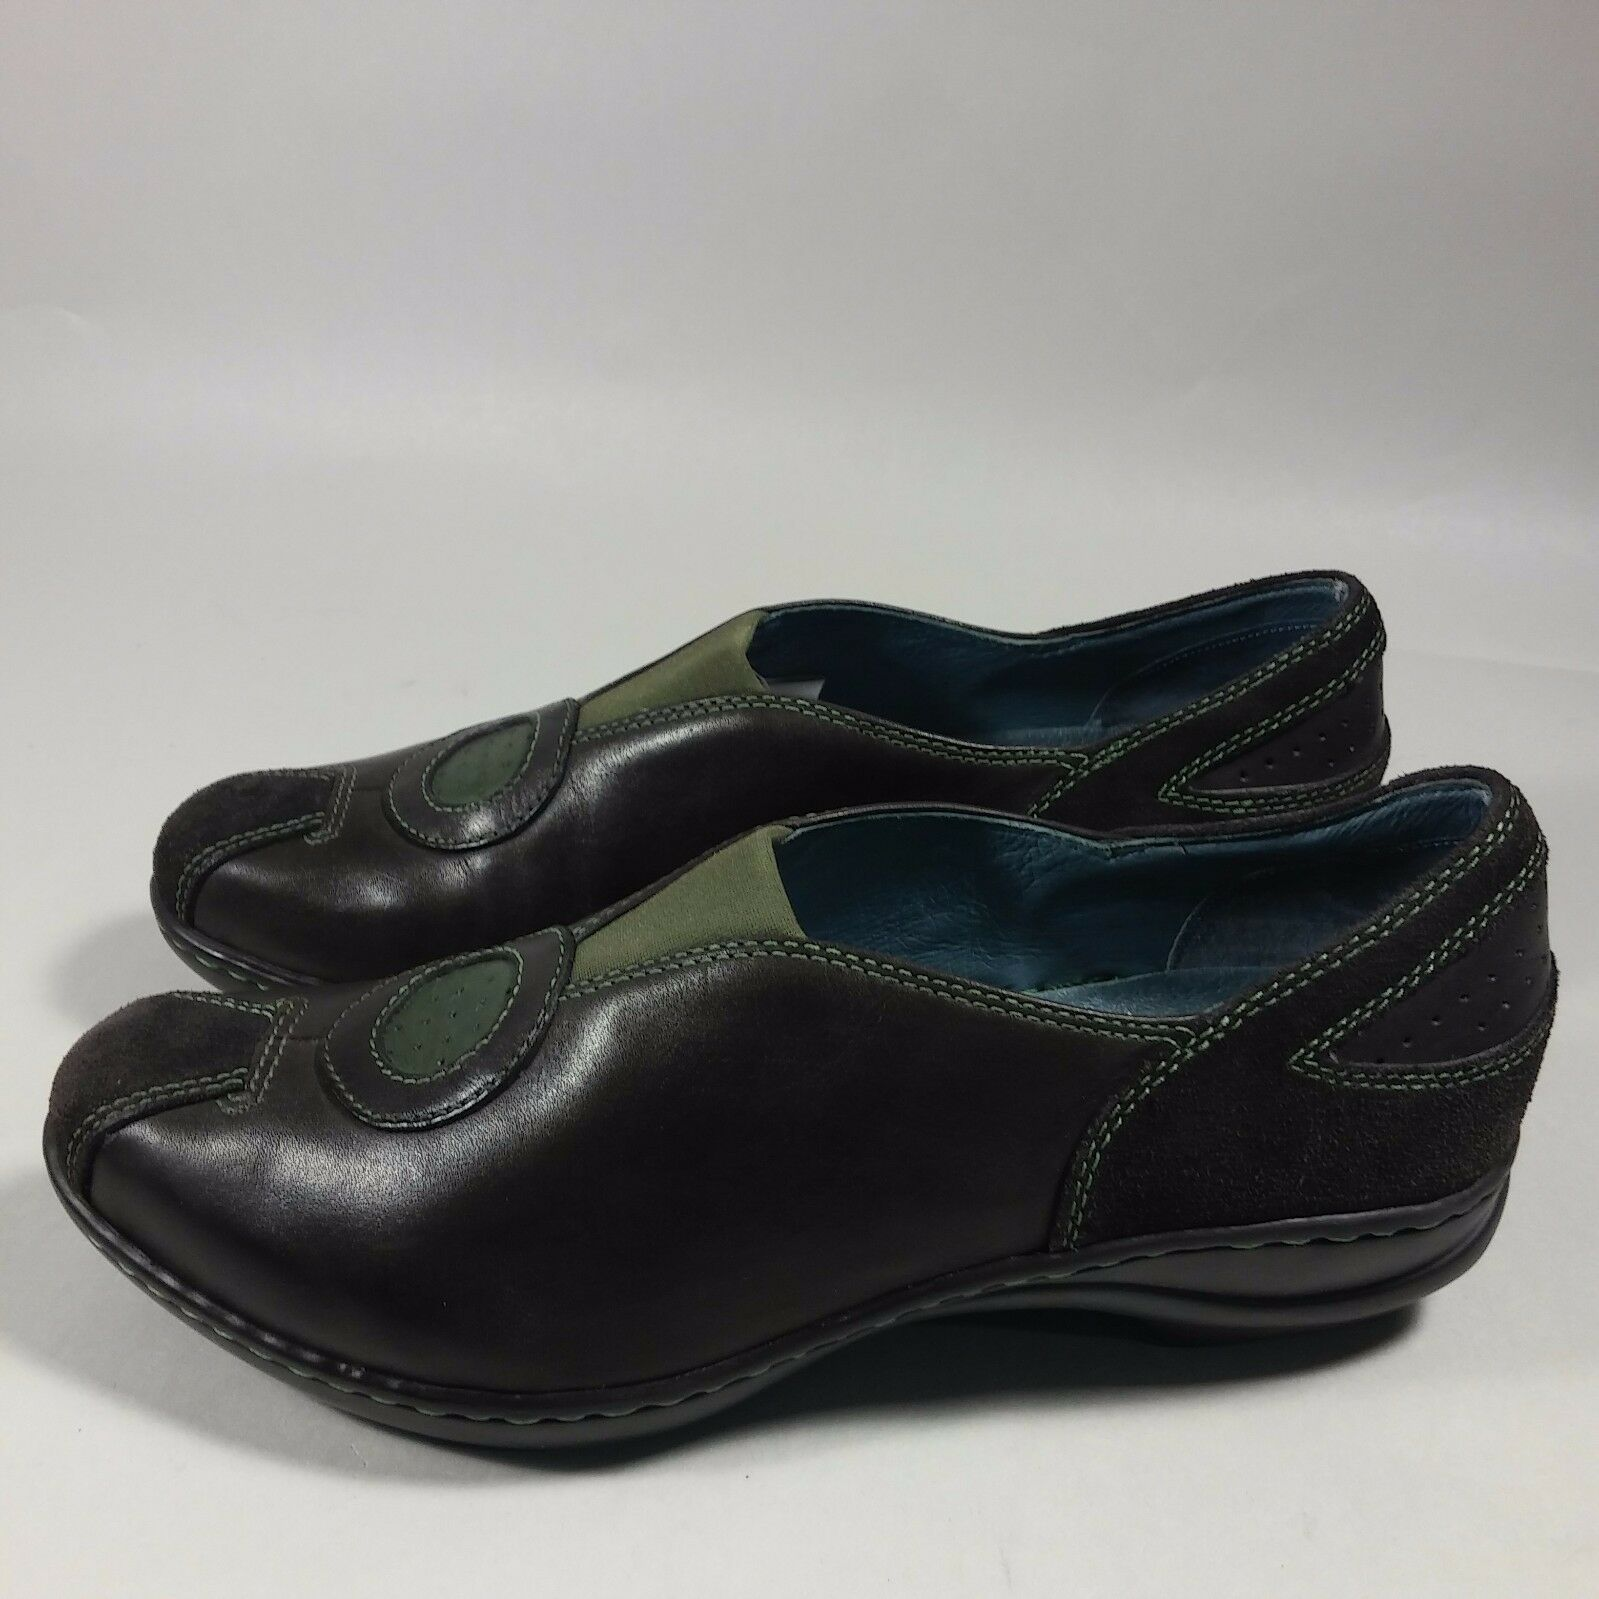 Women's Indigo by Clarks Slip-on Low Heels shoes Loafers Brown Olive Leather-6 M